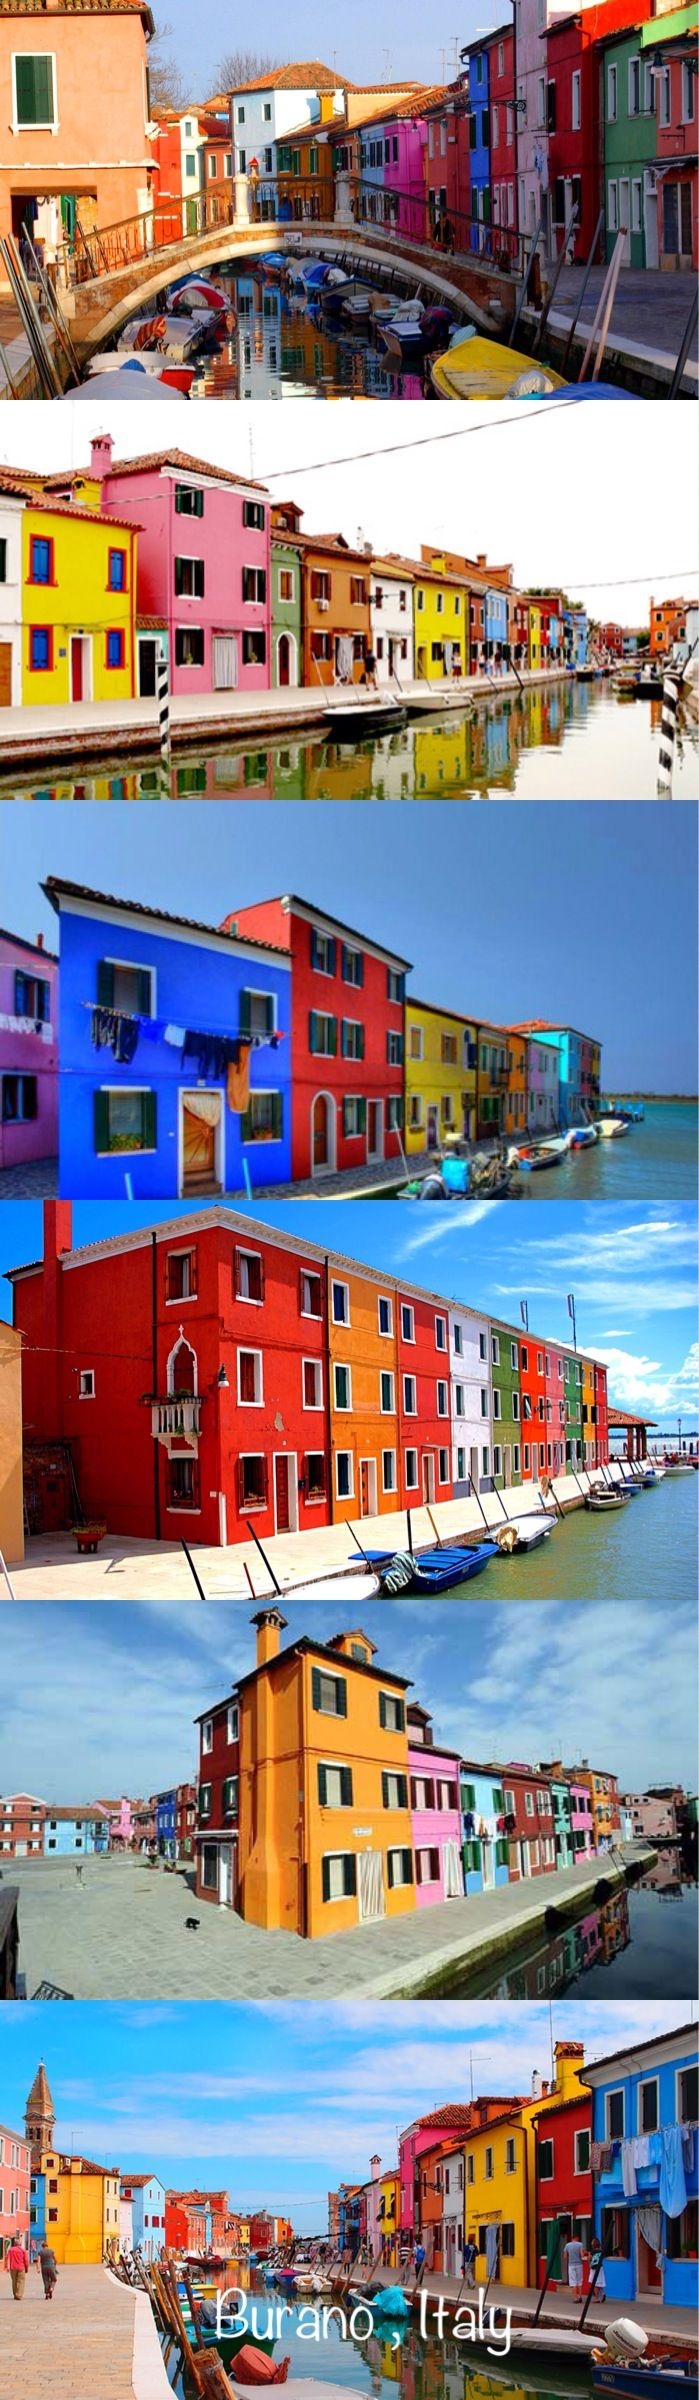 Burano , Italy...My favorite place in Italy!!! My daughter and I roamed around like we lived there.